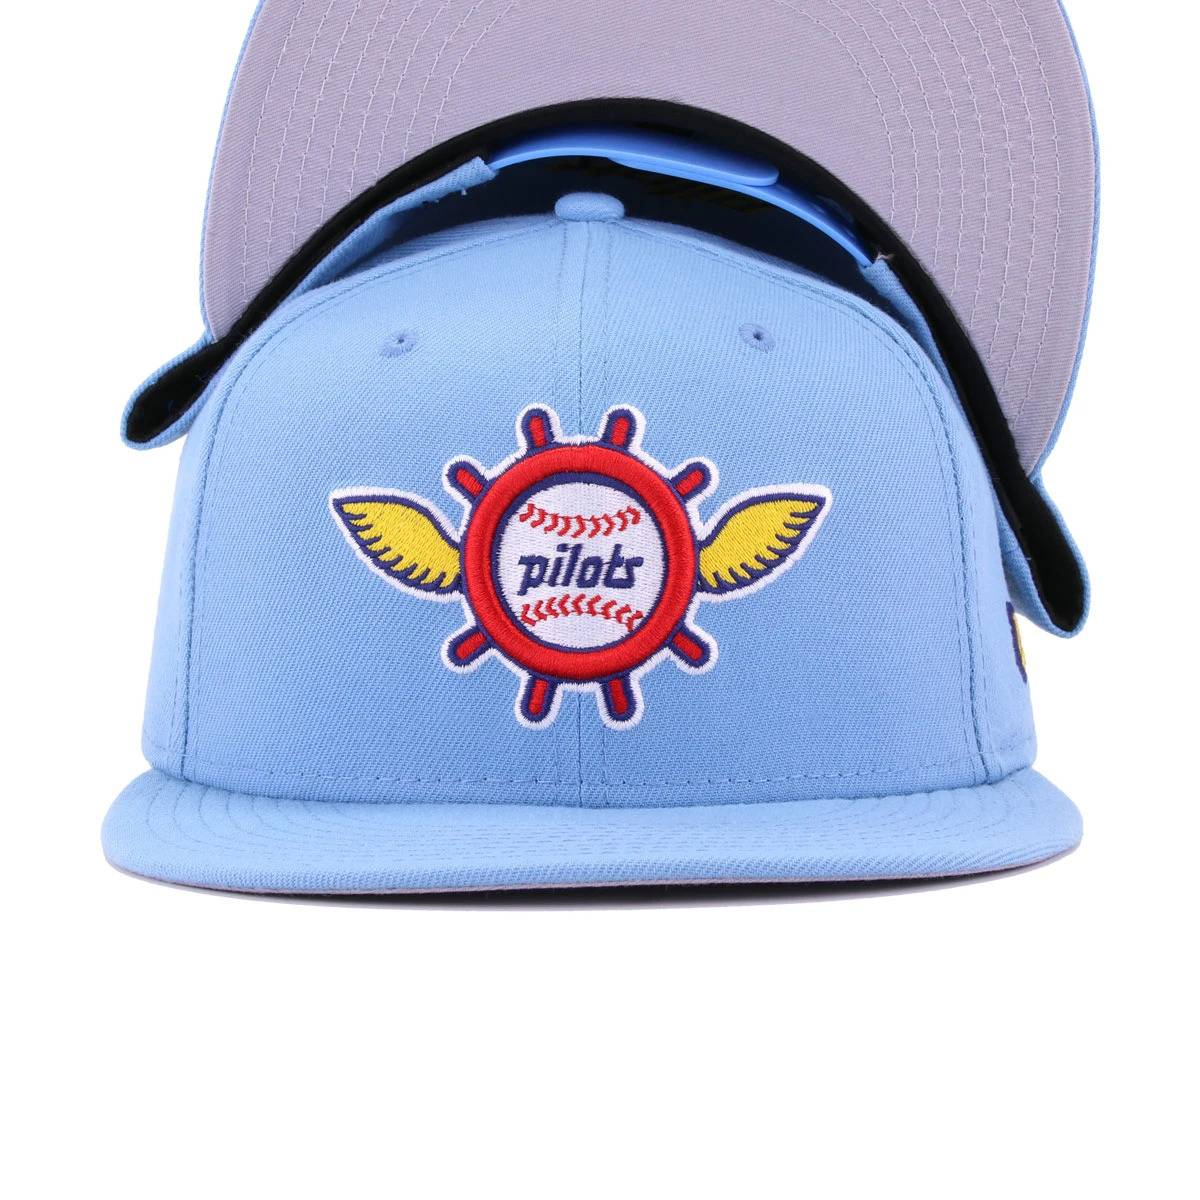 Seattle Pilots Sky Blue Cooperstown New Era 9Fifty Snapback